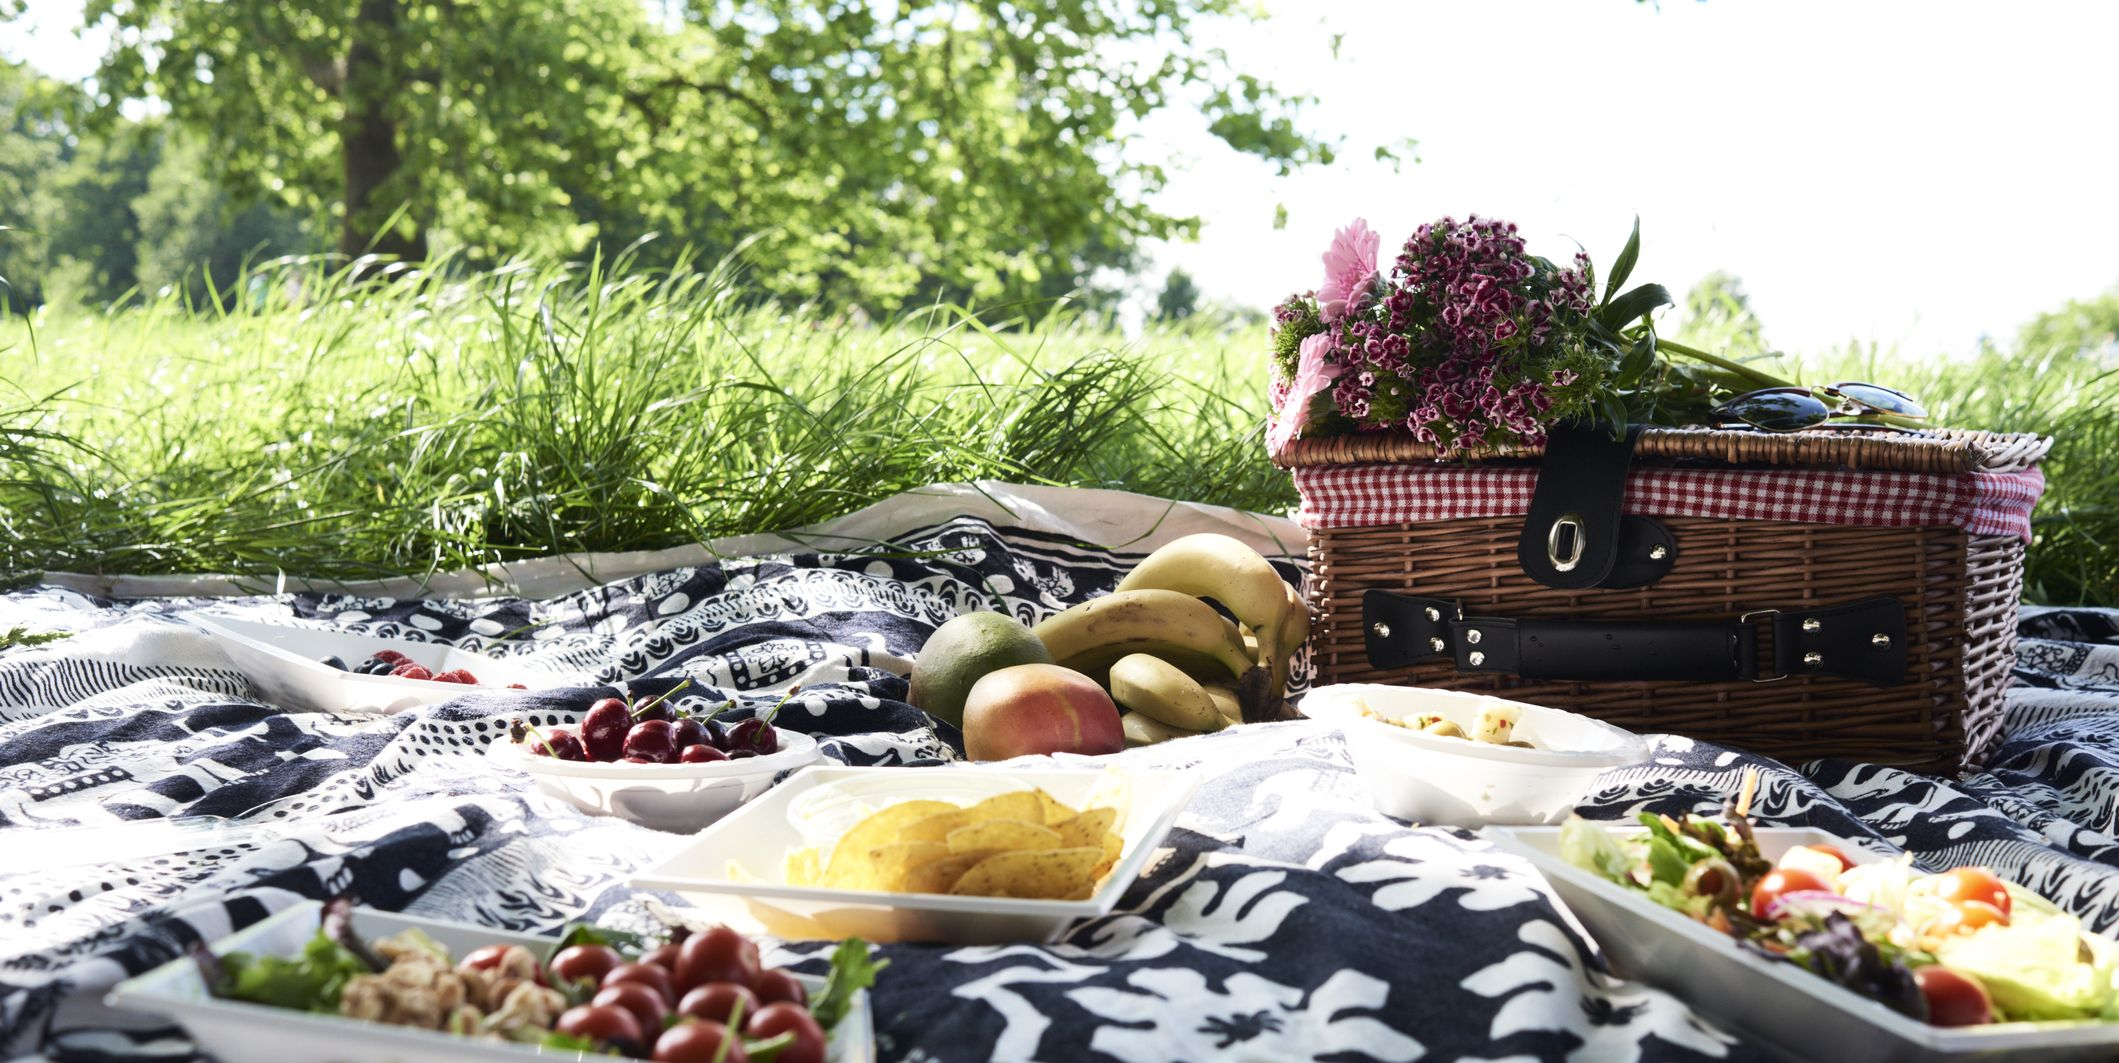 Picnic in a park in the summer